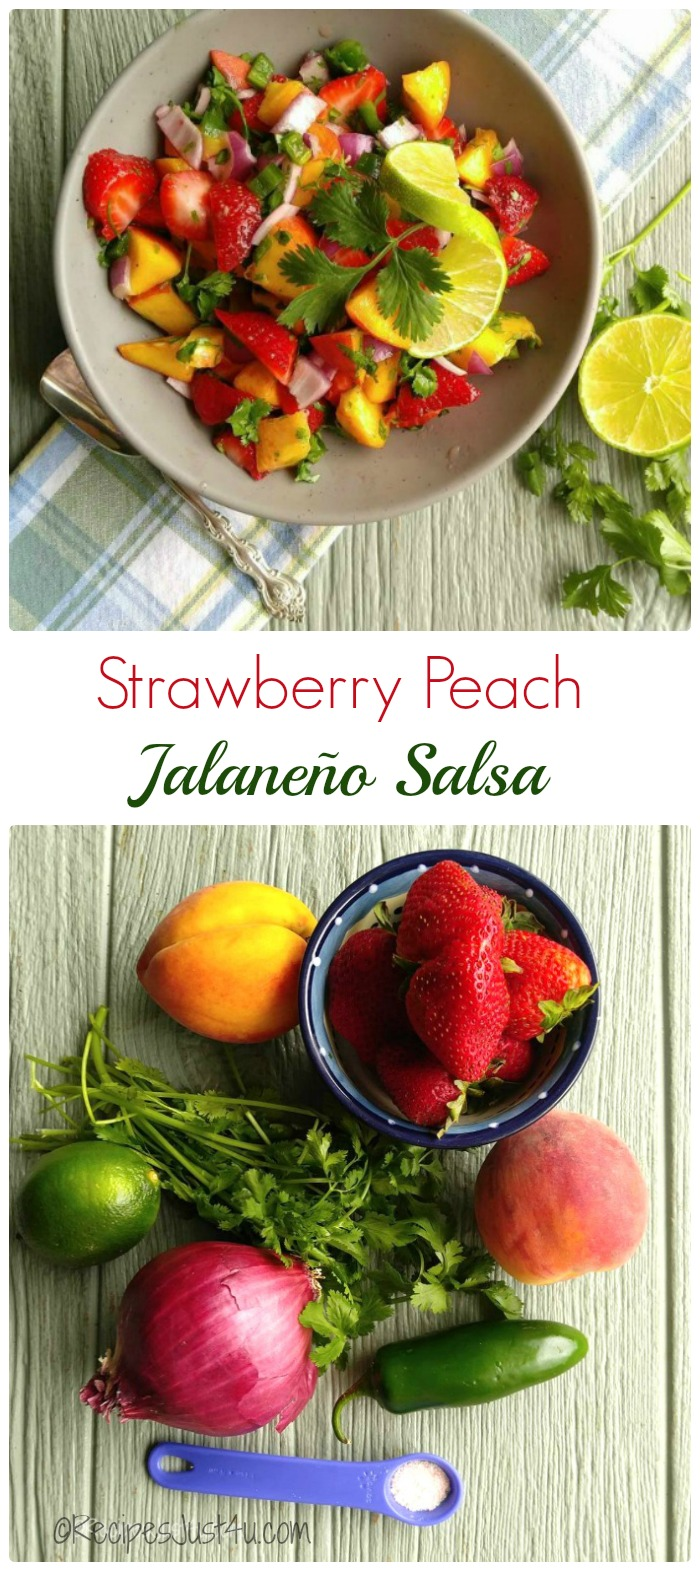 This Strawberry peach jalapeño salsa is the perfect way to start any party.  It is so tasty. Serve it with my home made tortilla chips.  recipesjust4u.com